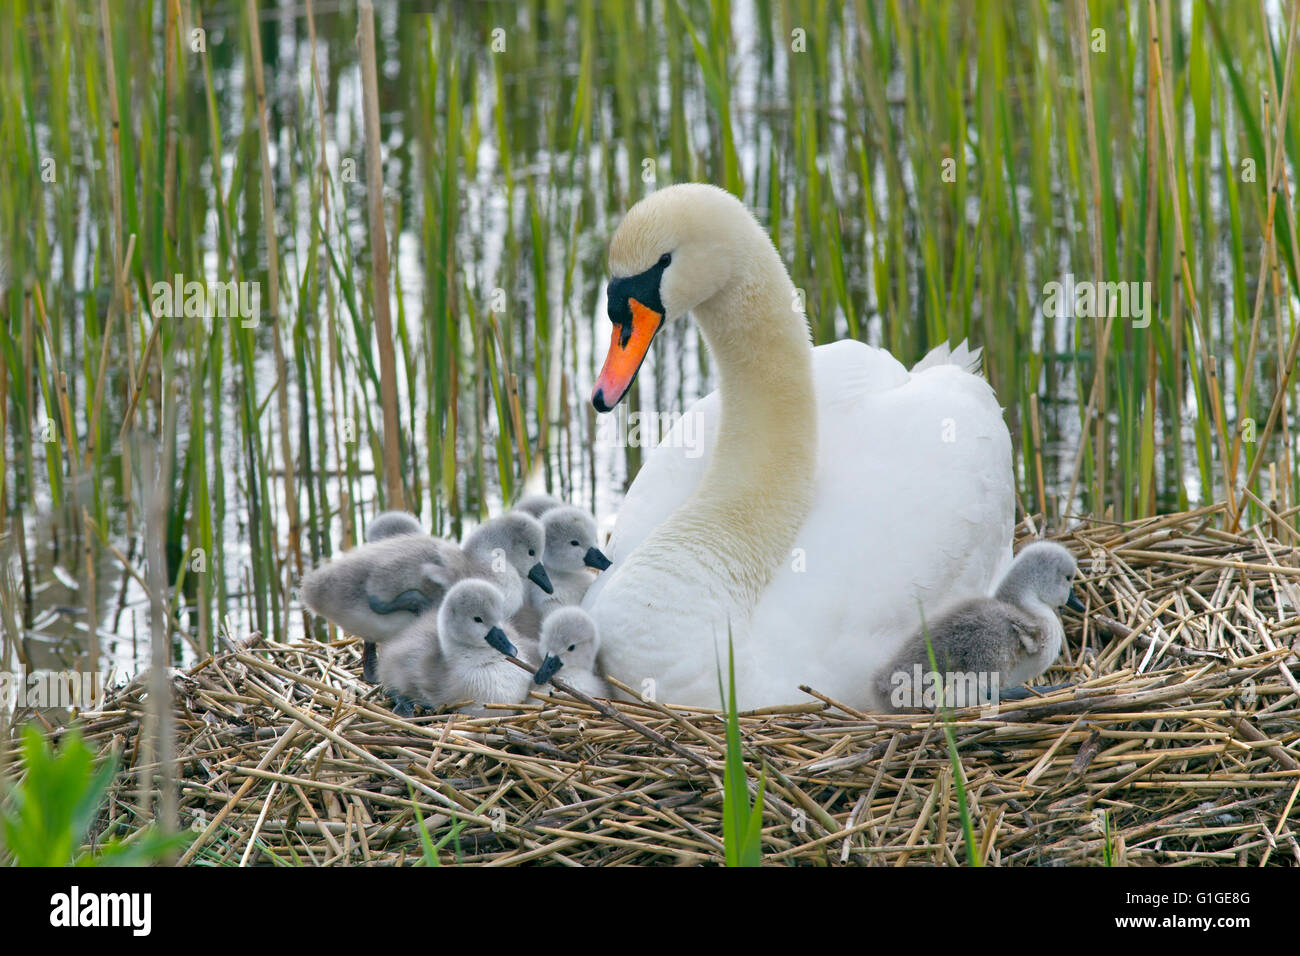 Mute Swan Cygnus olar on the nest with newly hatched Cygnets Stock Photo